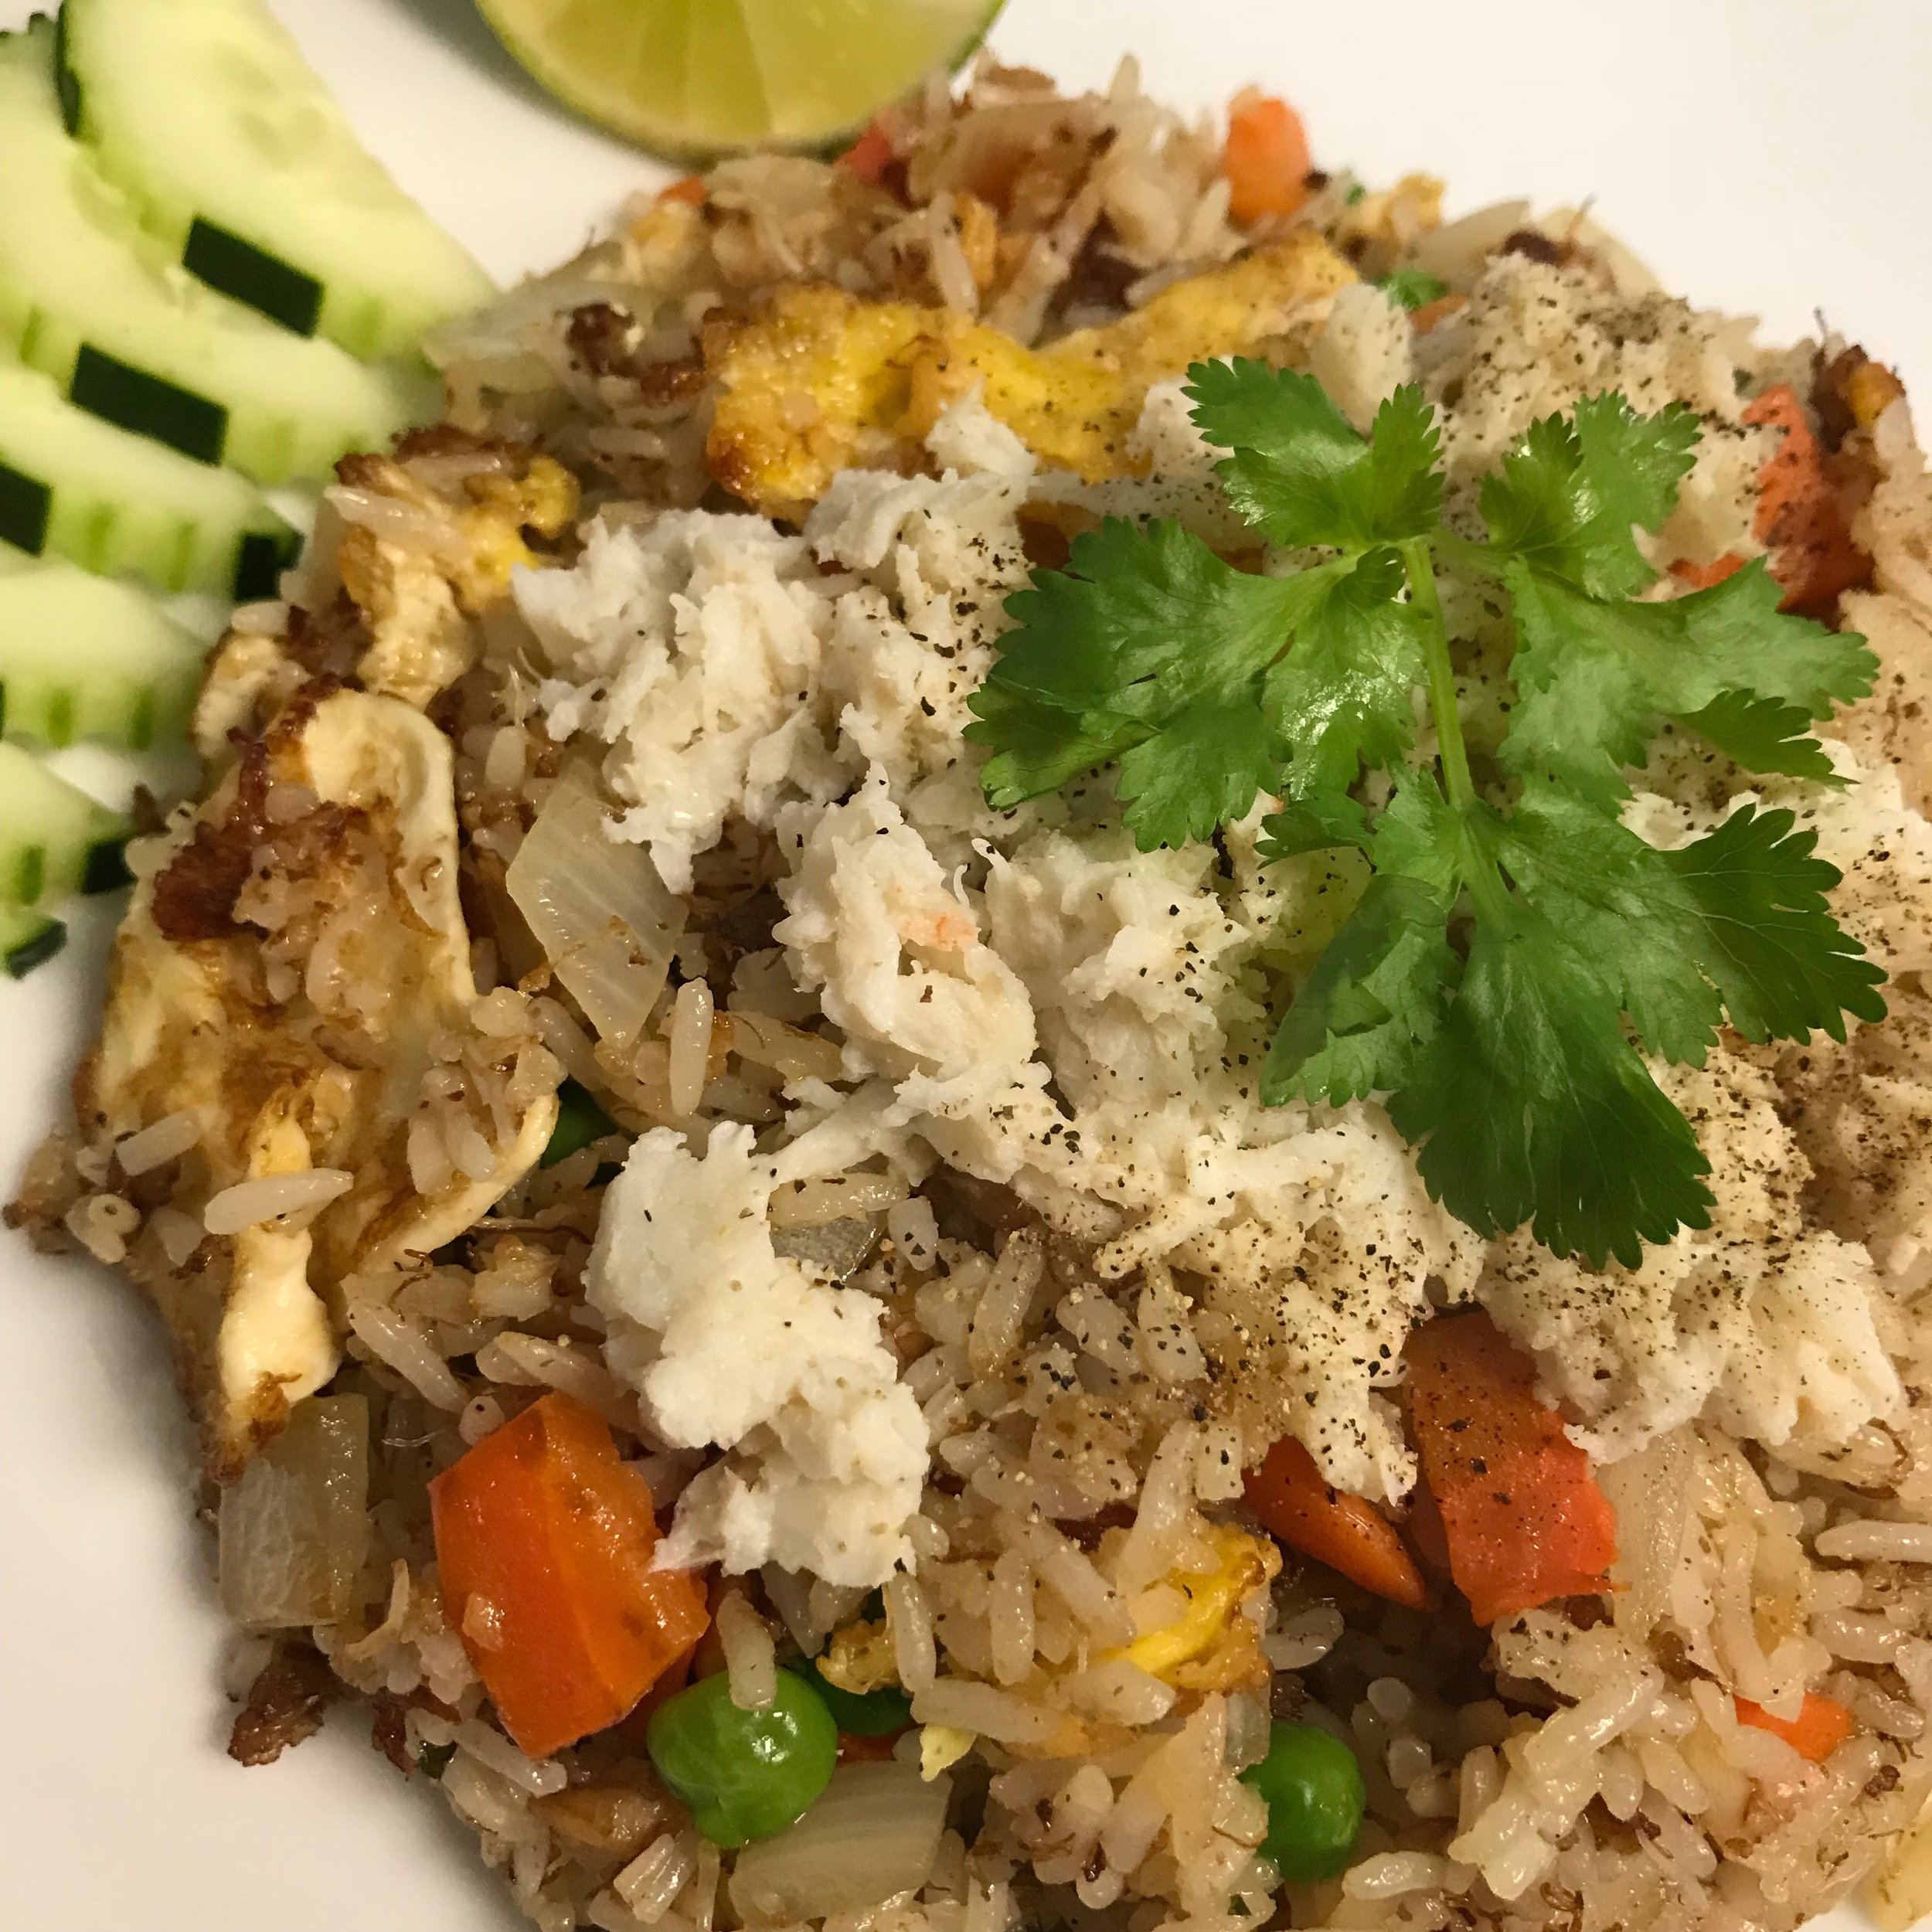 crab cake stir fried in with rice, sweet peas, carrots, onions, and egg | topped with crab meat